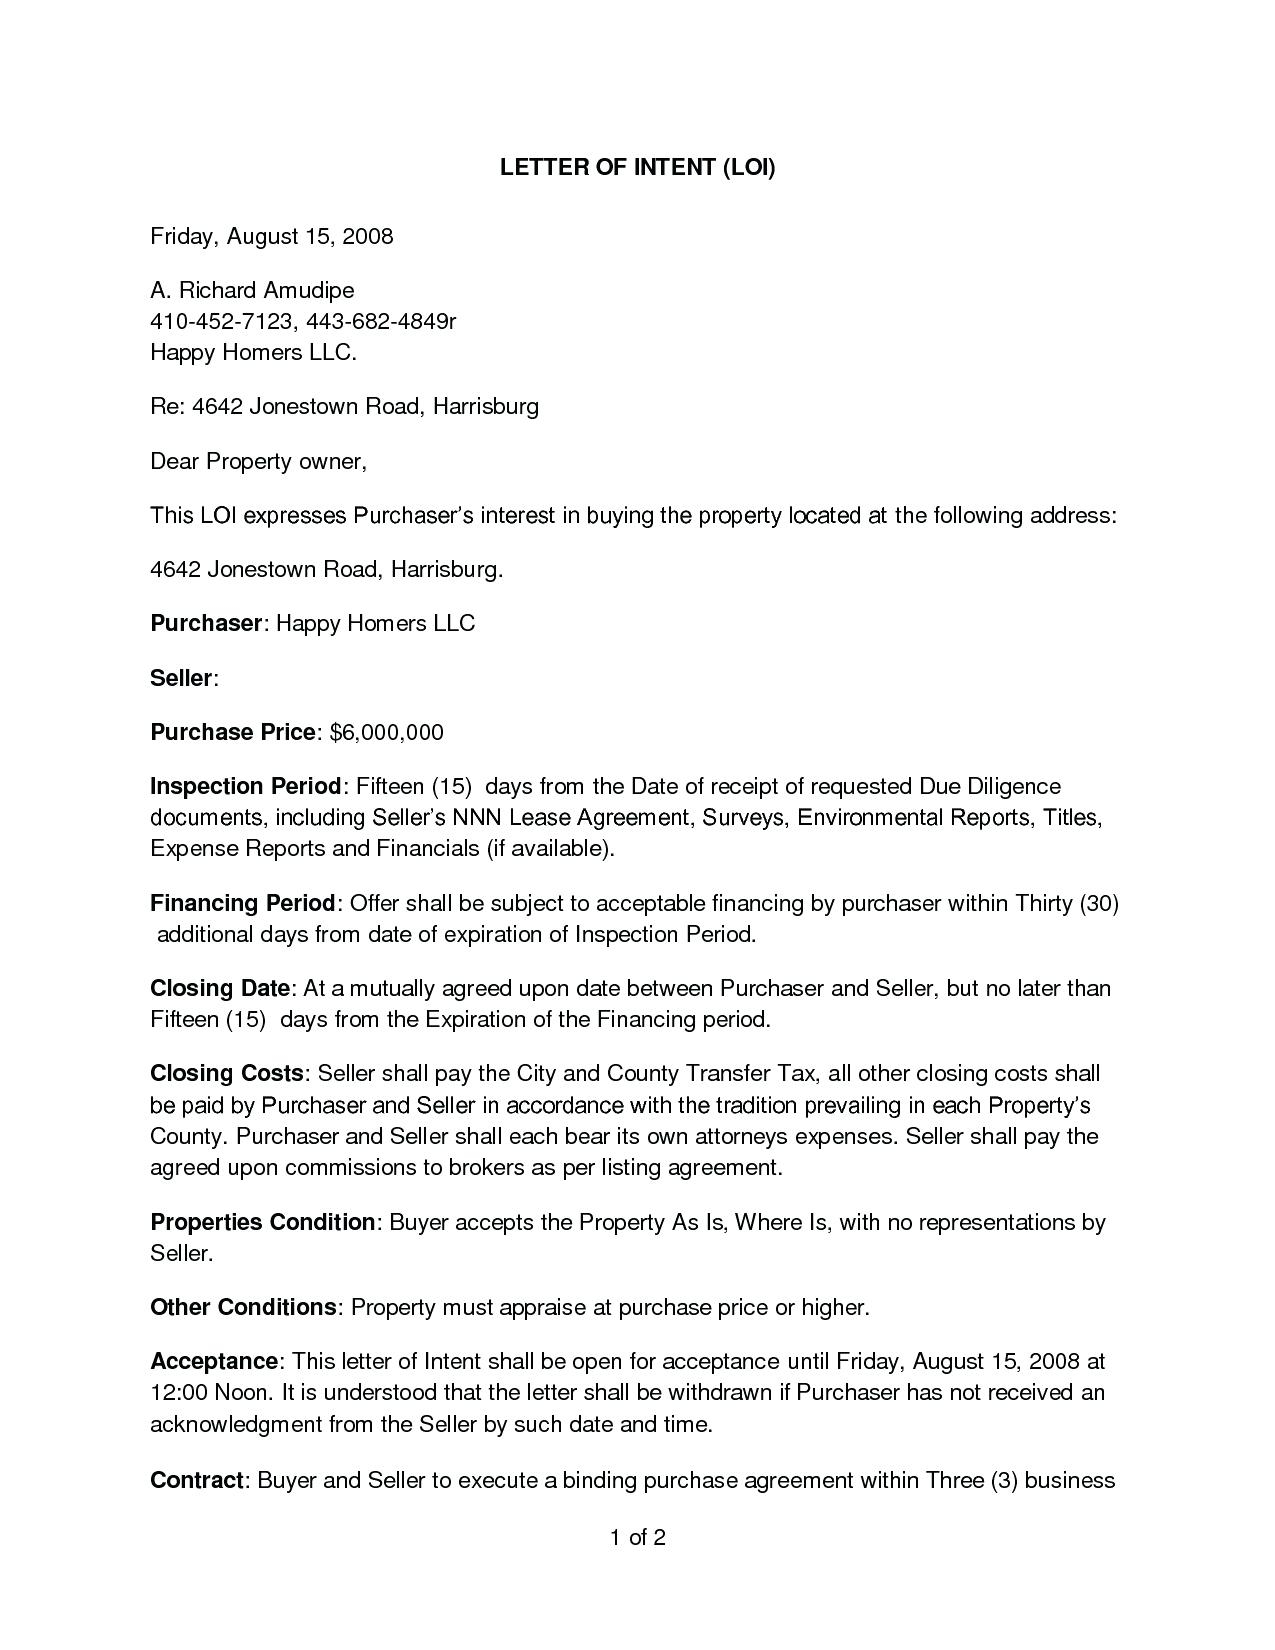 Commercial Real Estate Letter Of Intent to Purchase Template - Letter Intent to Purchase Template Agreement Real Estate